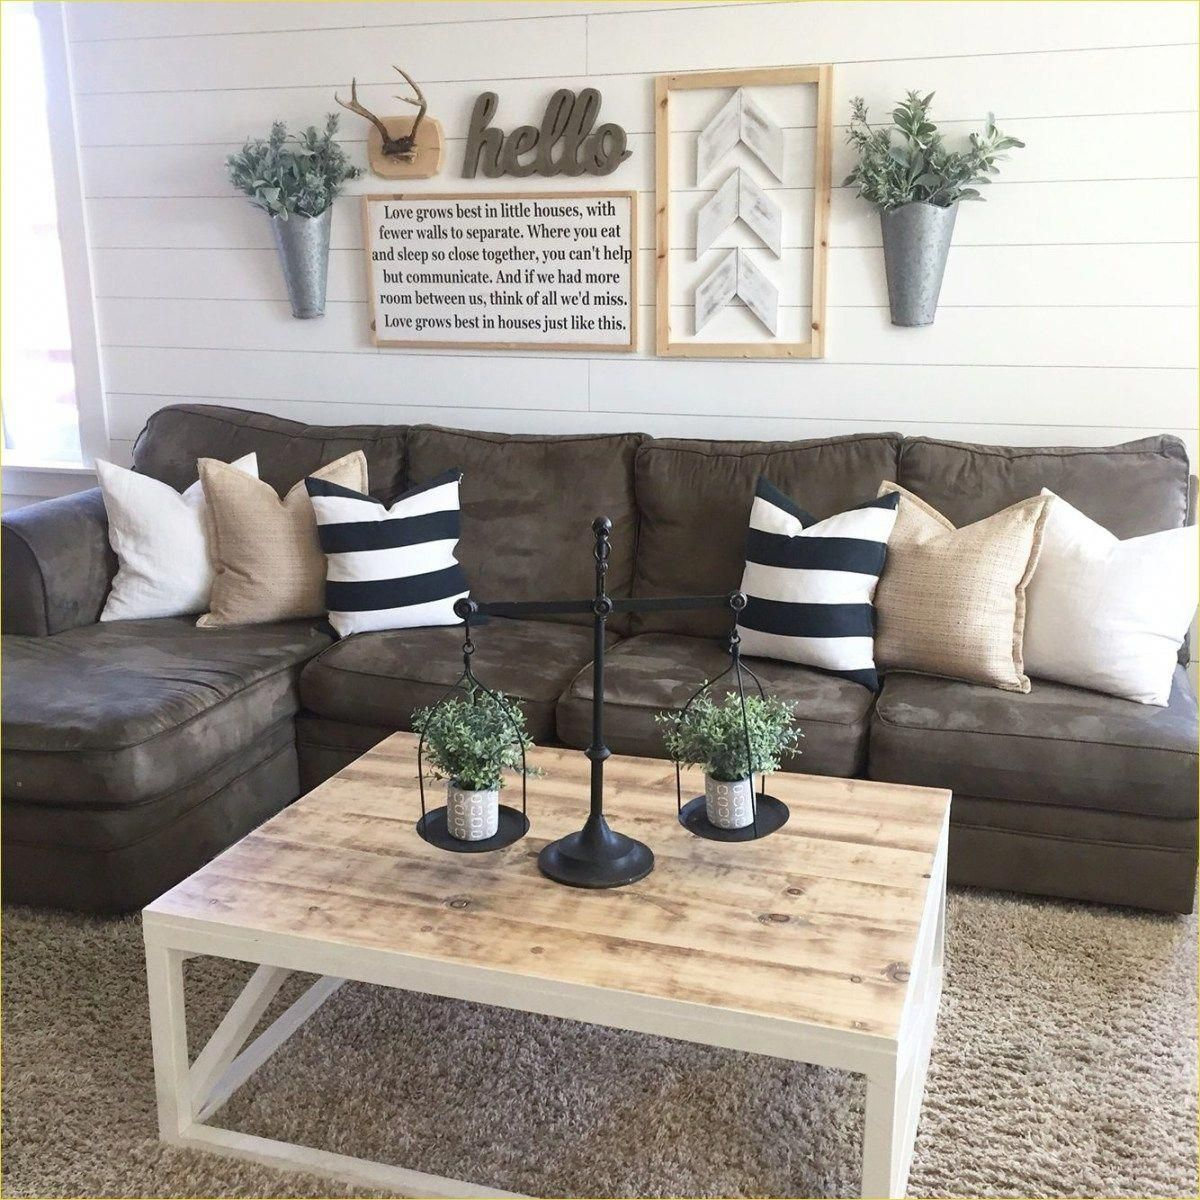 Modern Farmhouse Living Room With Leather Sofa 93 85 Adorable Living Room Modern Farmhouse Living Room Decor Farm House Living Room Farmhouse Decor Living Room